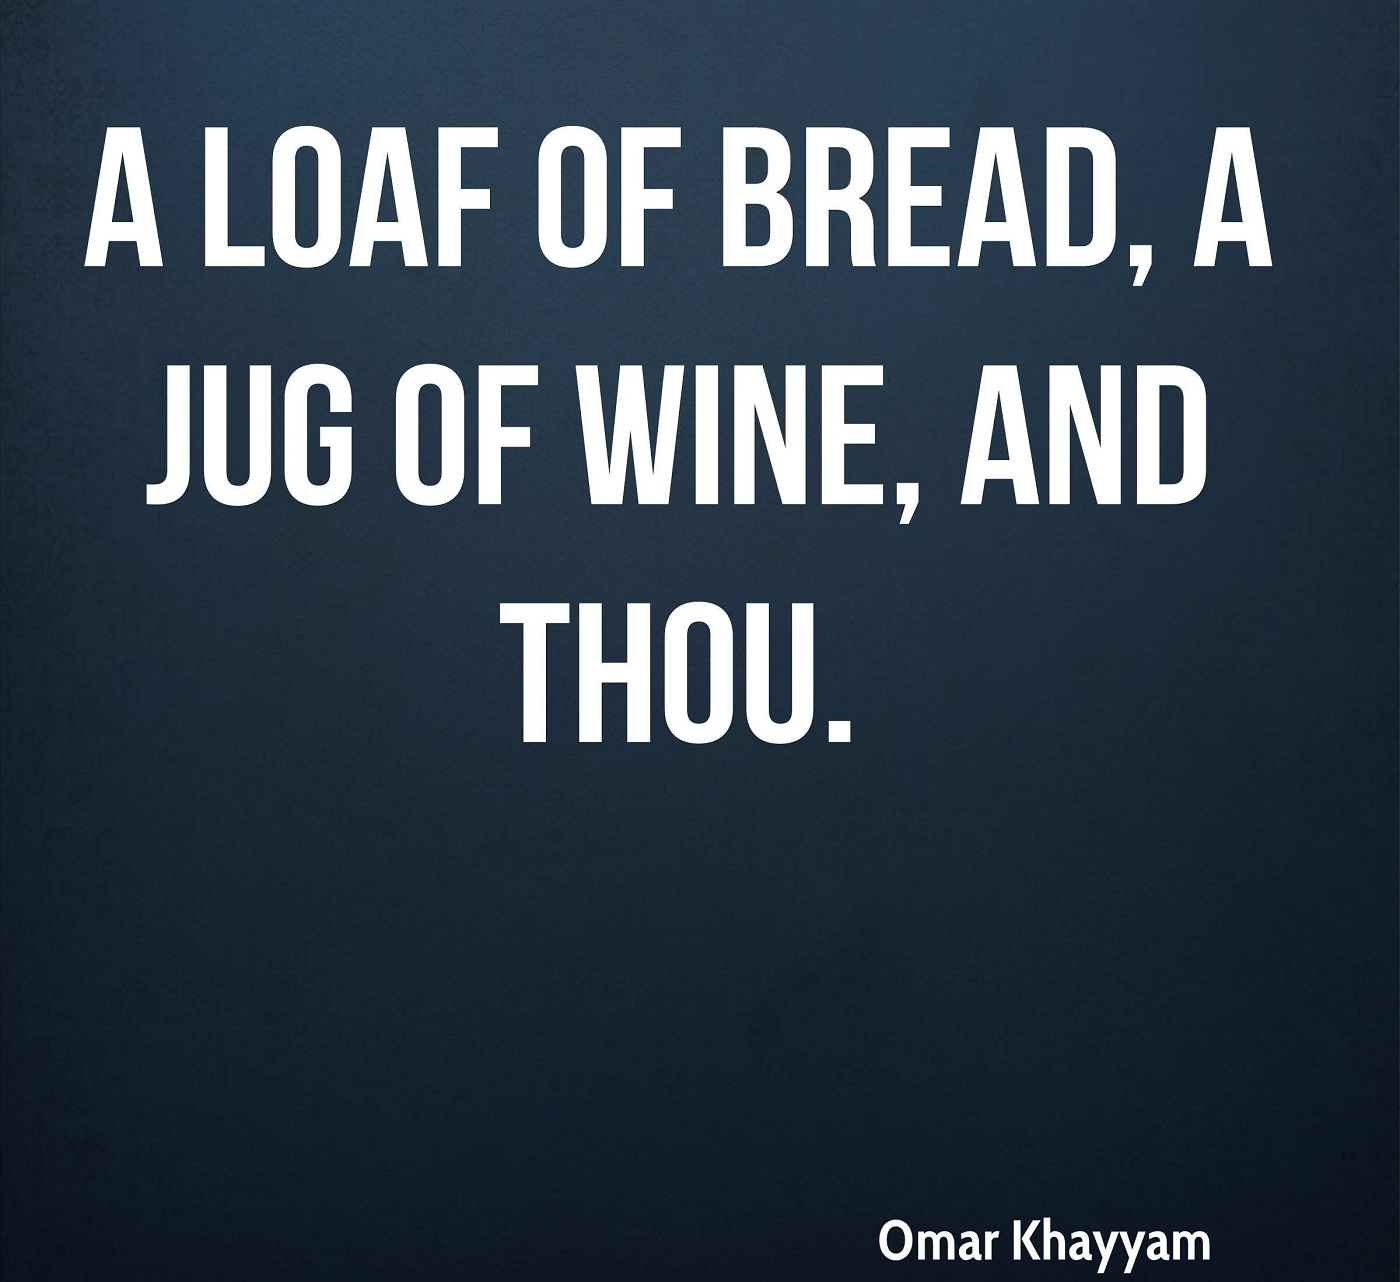 omar khayyam poet quote a loaf of bread a jug of wine and